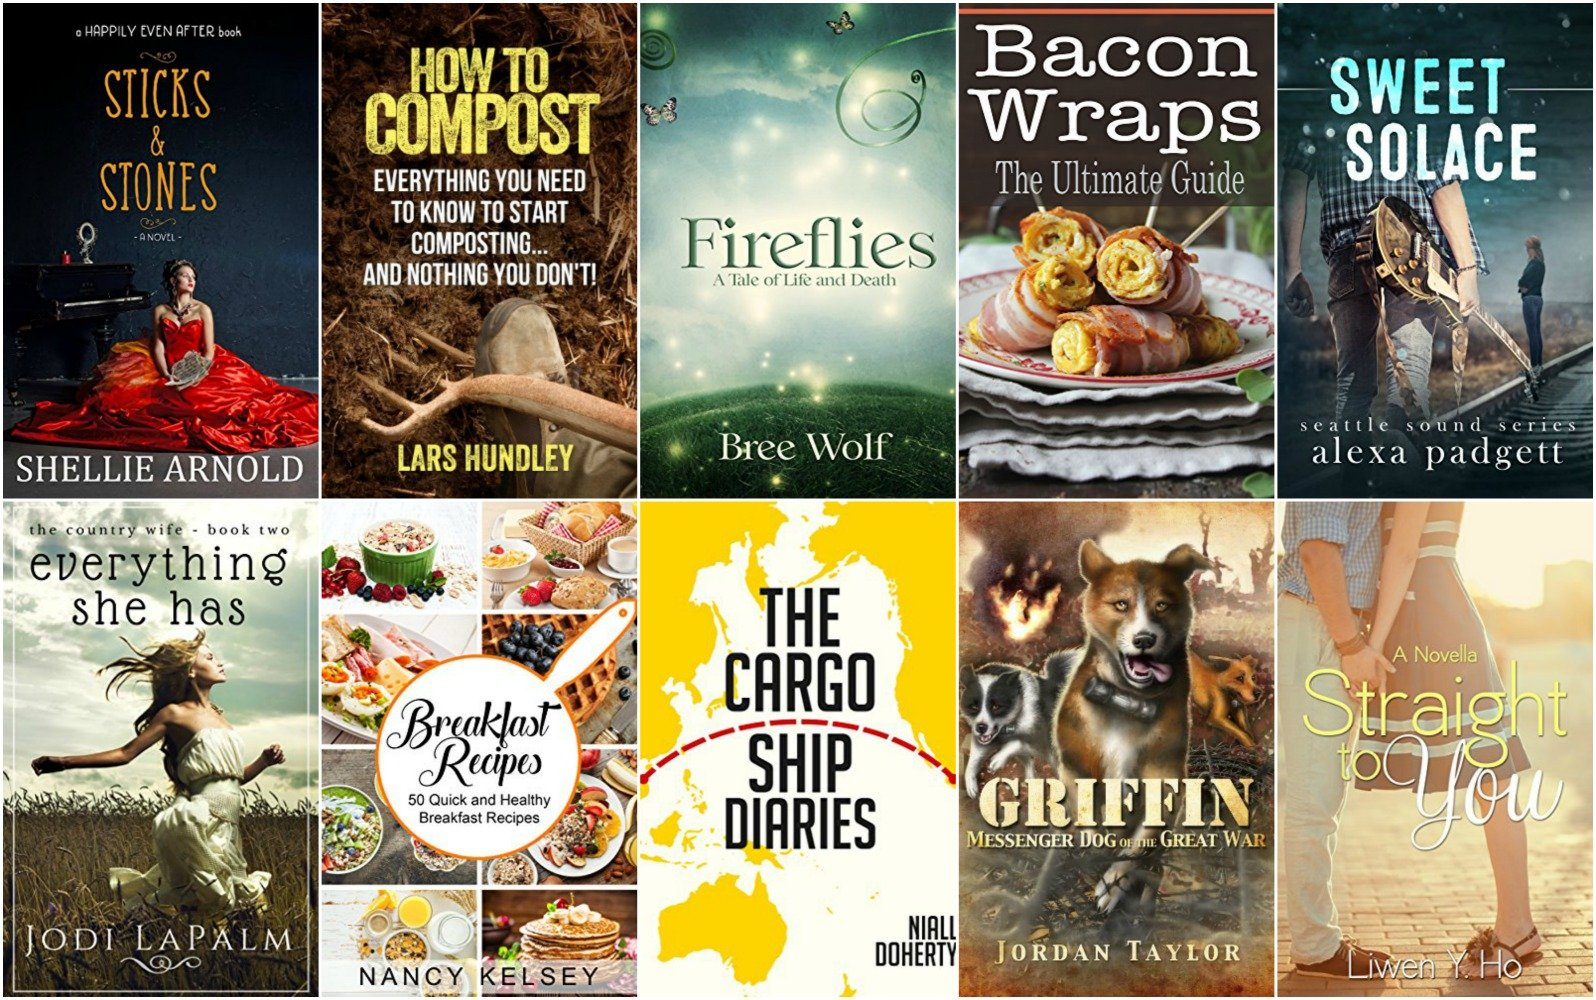 10 Free Kindle Ebooks: Sticks and Stones, Fireflies, Bacon Wraps and More!